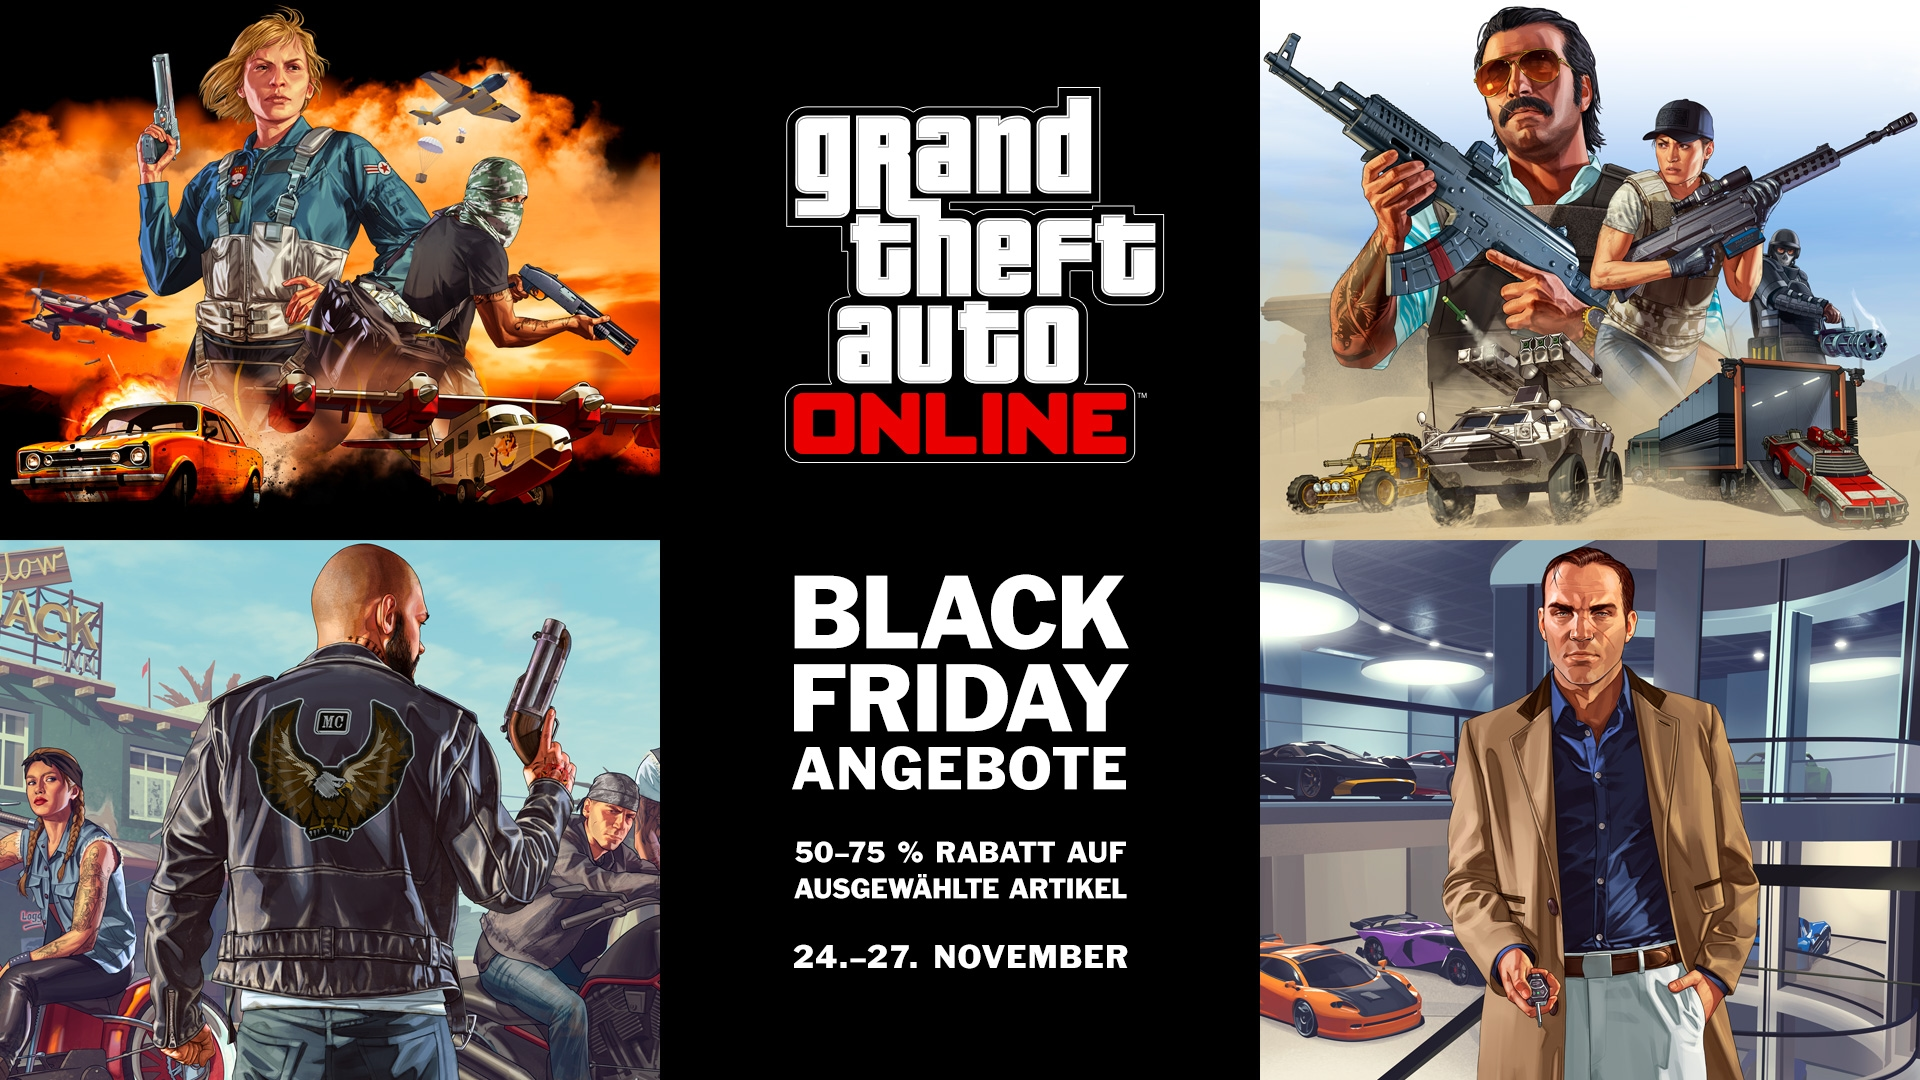 Black Friday Wochenende Rabatte Am Black Friday Wochenende In Gta Online 24 27 11